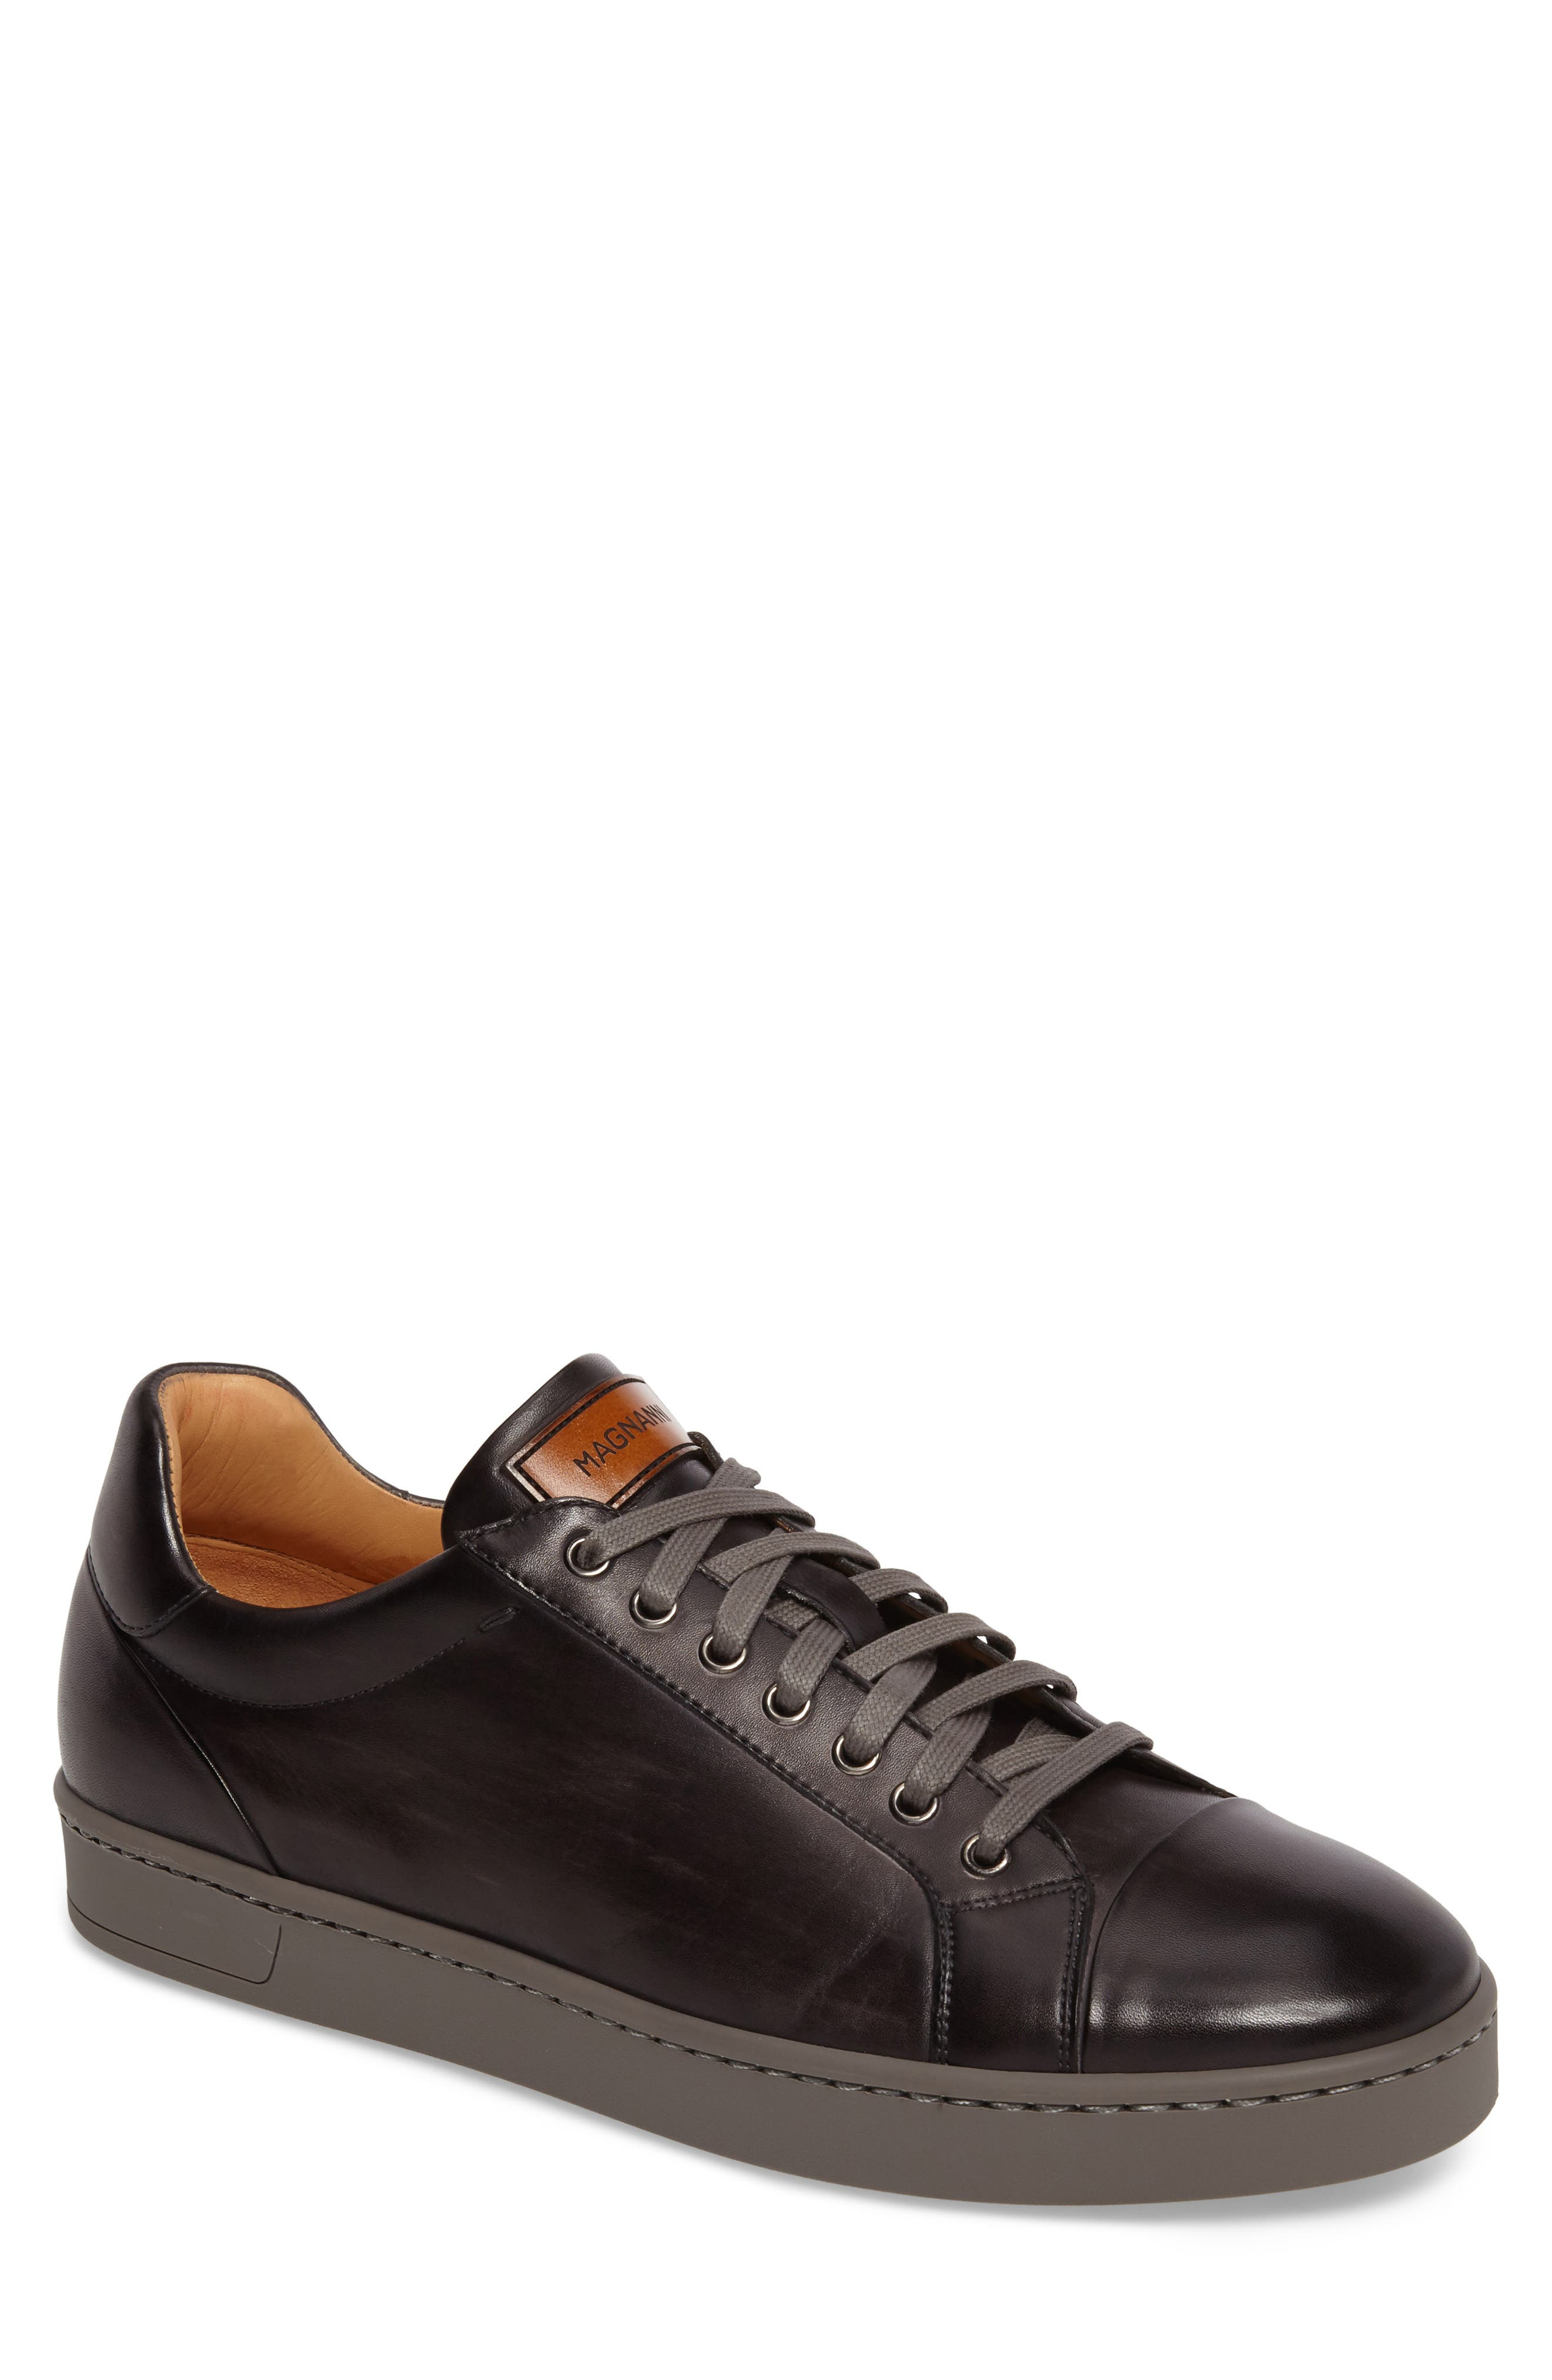 Caitin Sneaker,                             Main thumbnail 1, color,                             Grey Leather